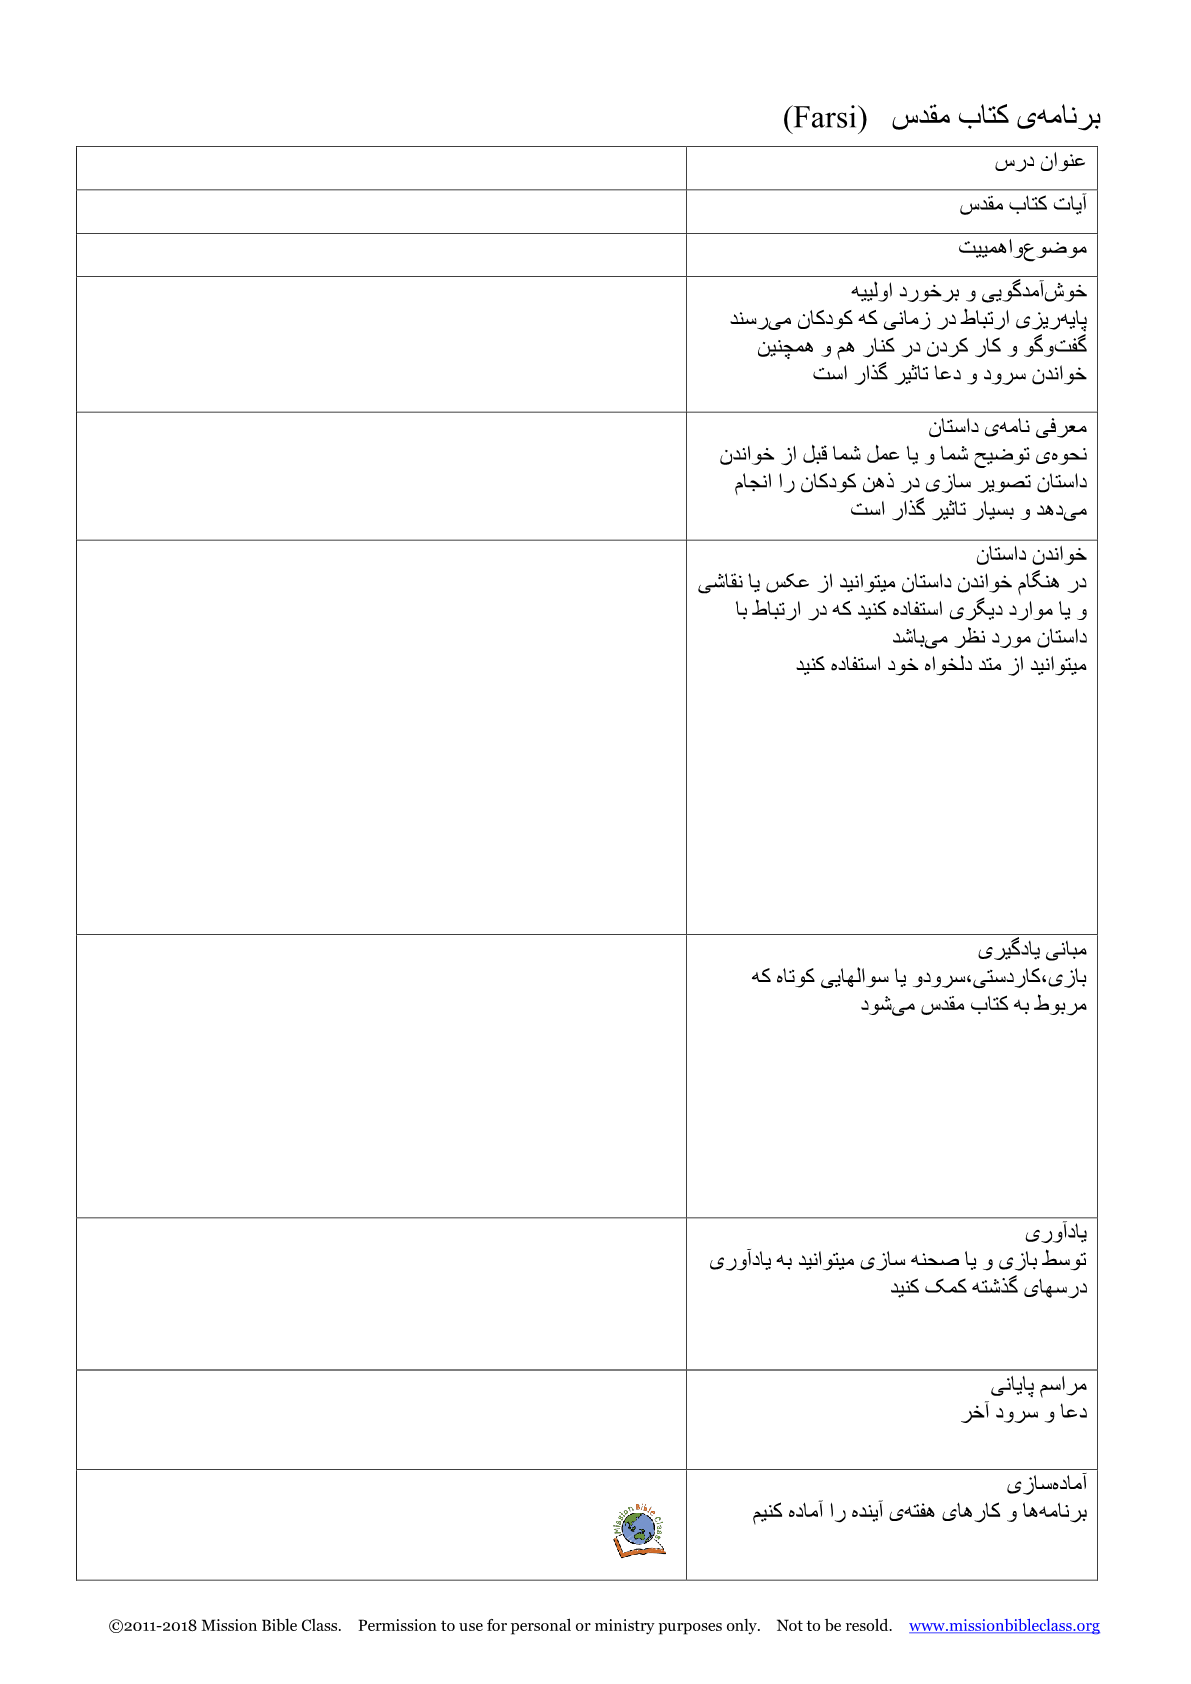 Farsi Teaching Template_image1